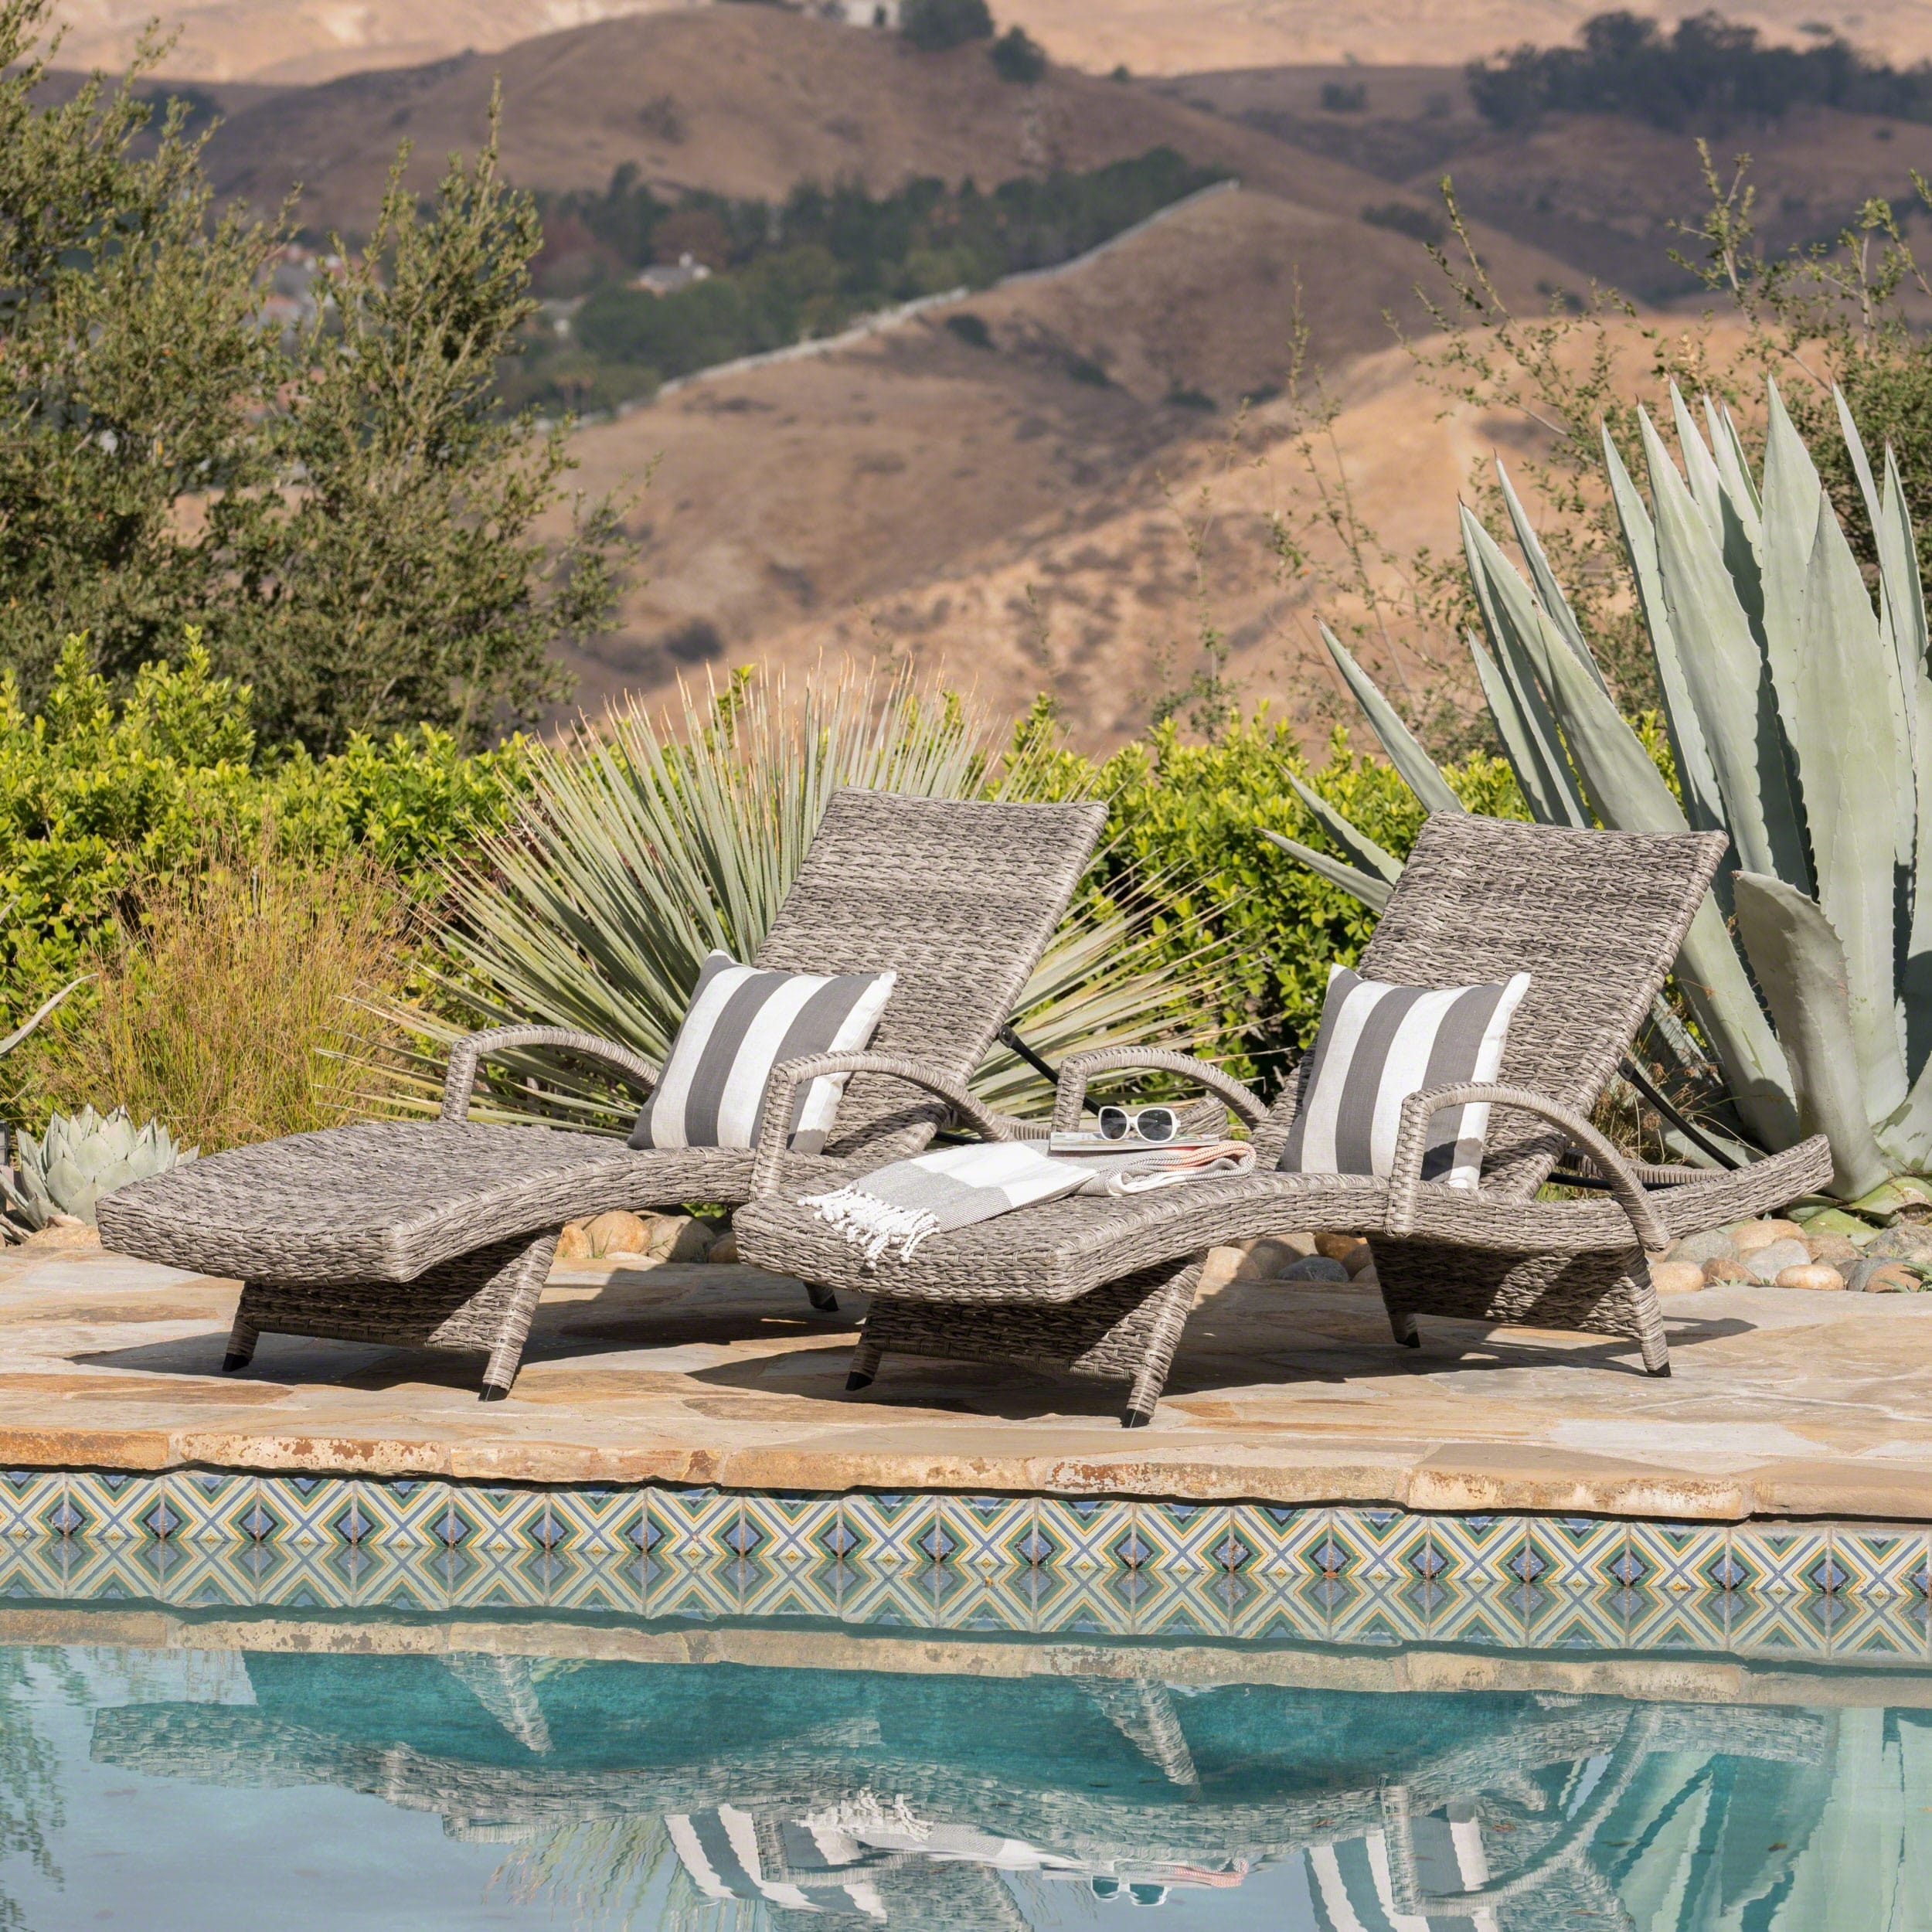 Christopher Knight Home Crete Outdoor Armed Aluminum Wicker Chaise Lounge (Set of 2) by